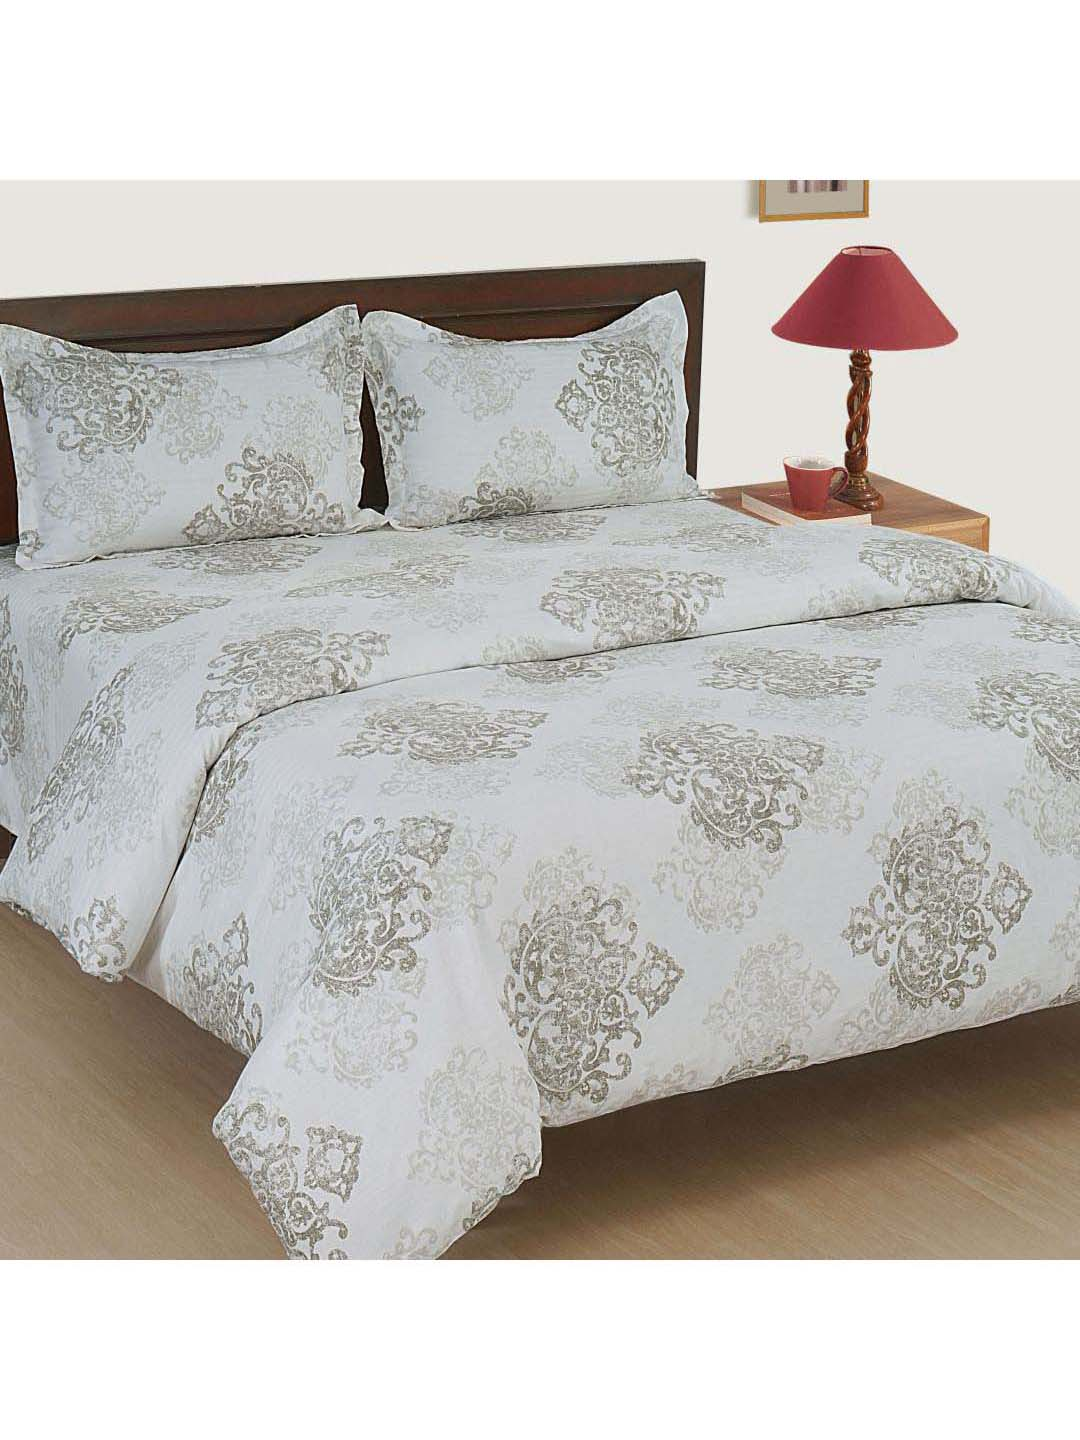 Swayam Zinnia White 250 Gsm Bed Sheet Set From Swayam At Best Prices On Tata Cliq